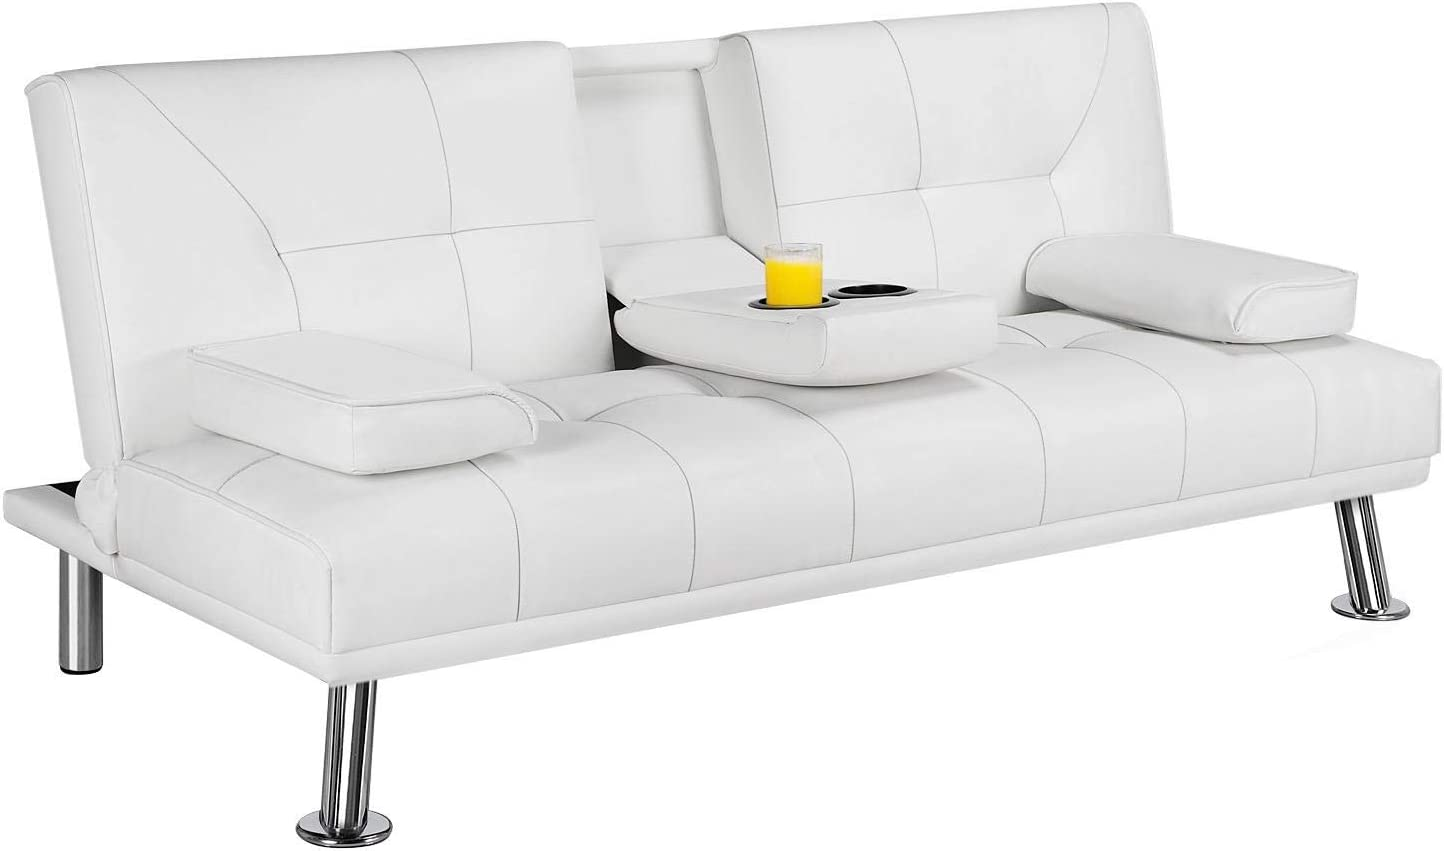 Topeakmart Futon Sofa Bed